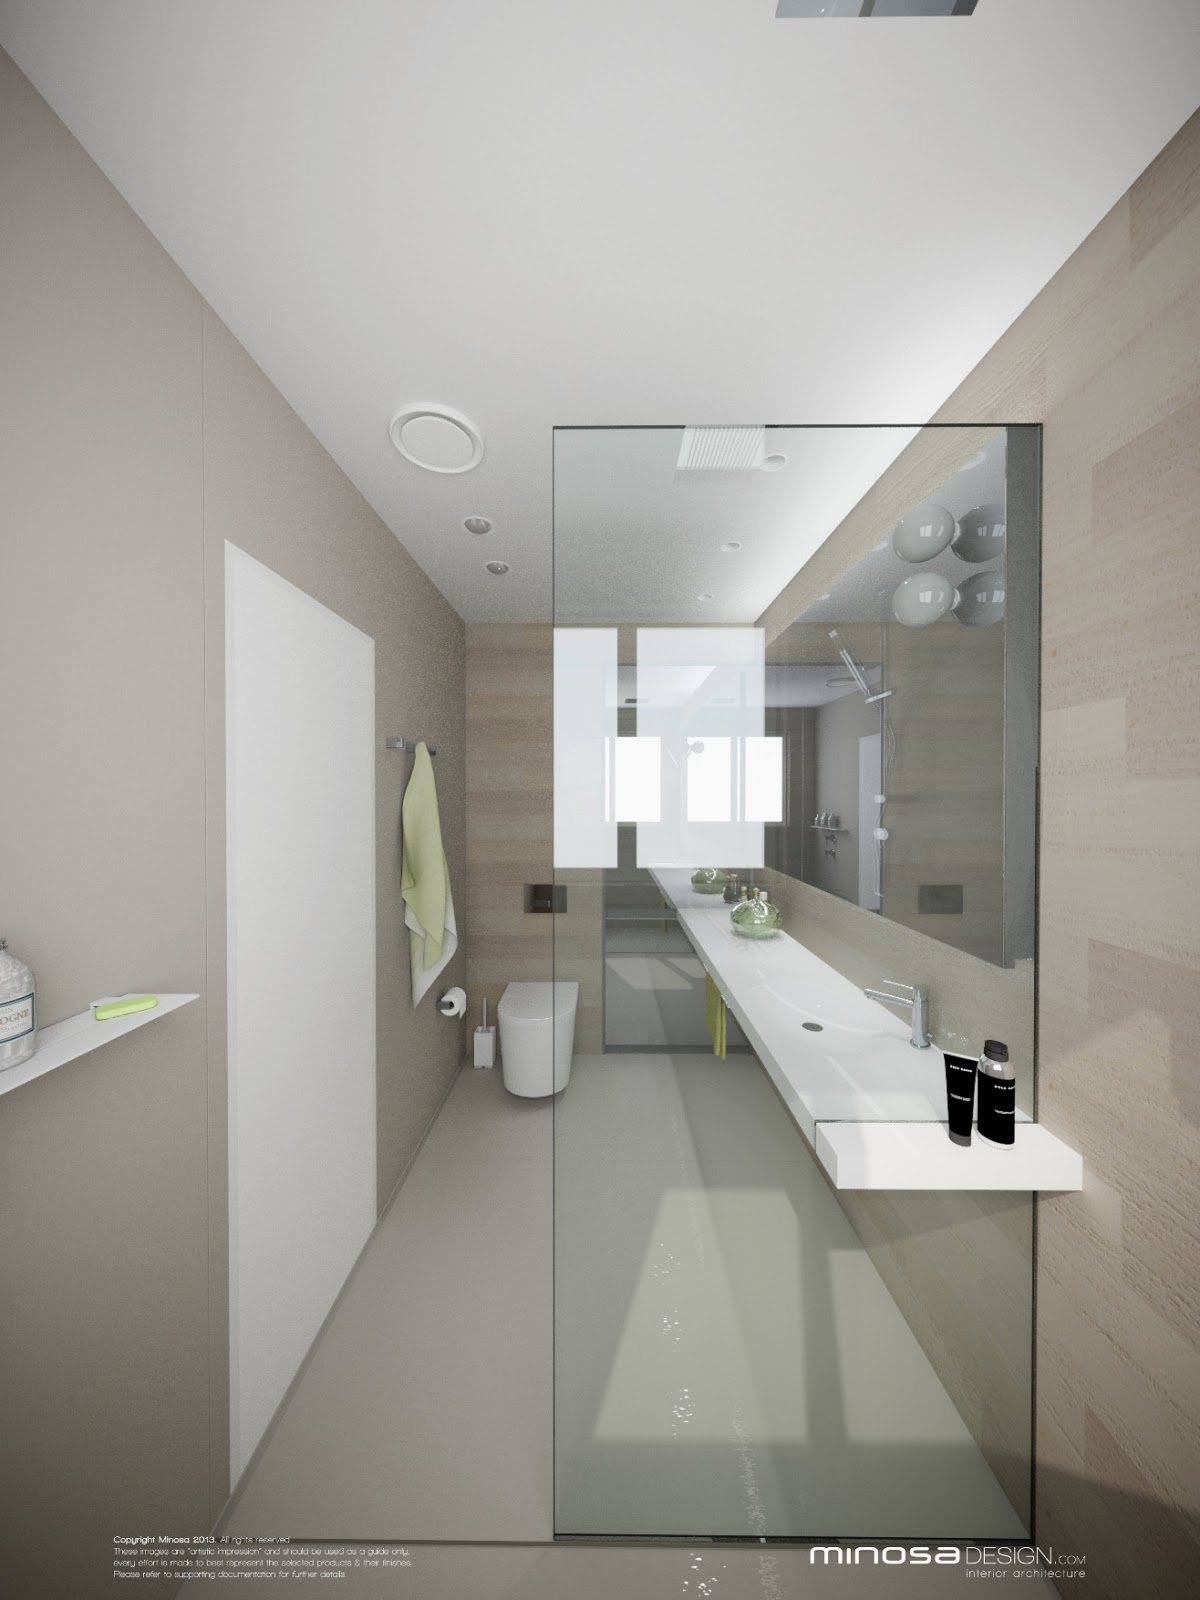 Minosa bringing sexy back the modern bathroom for Ensuite design ideas